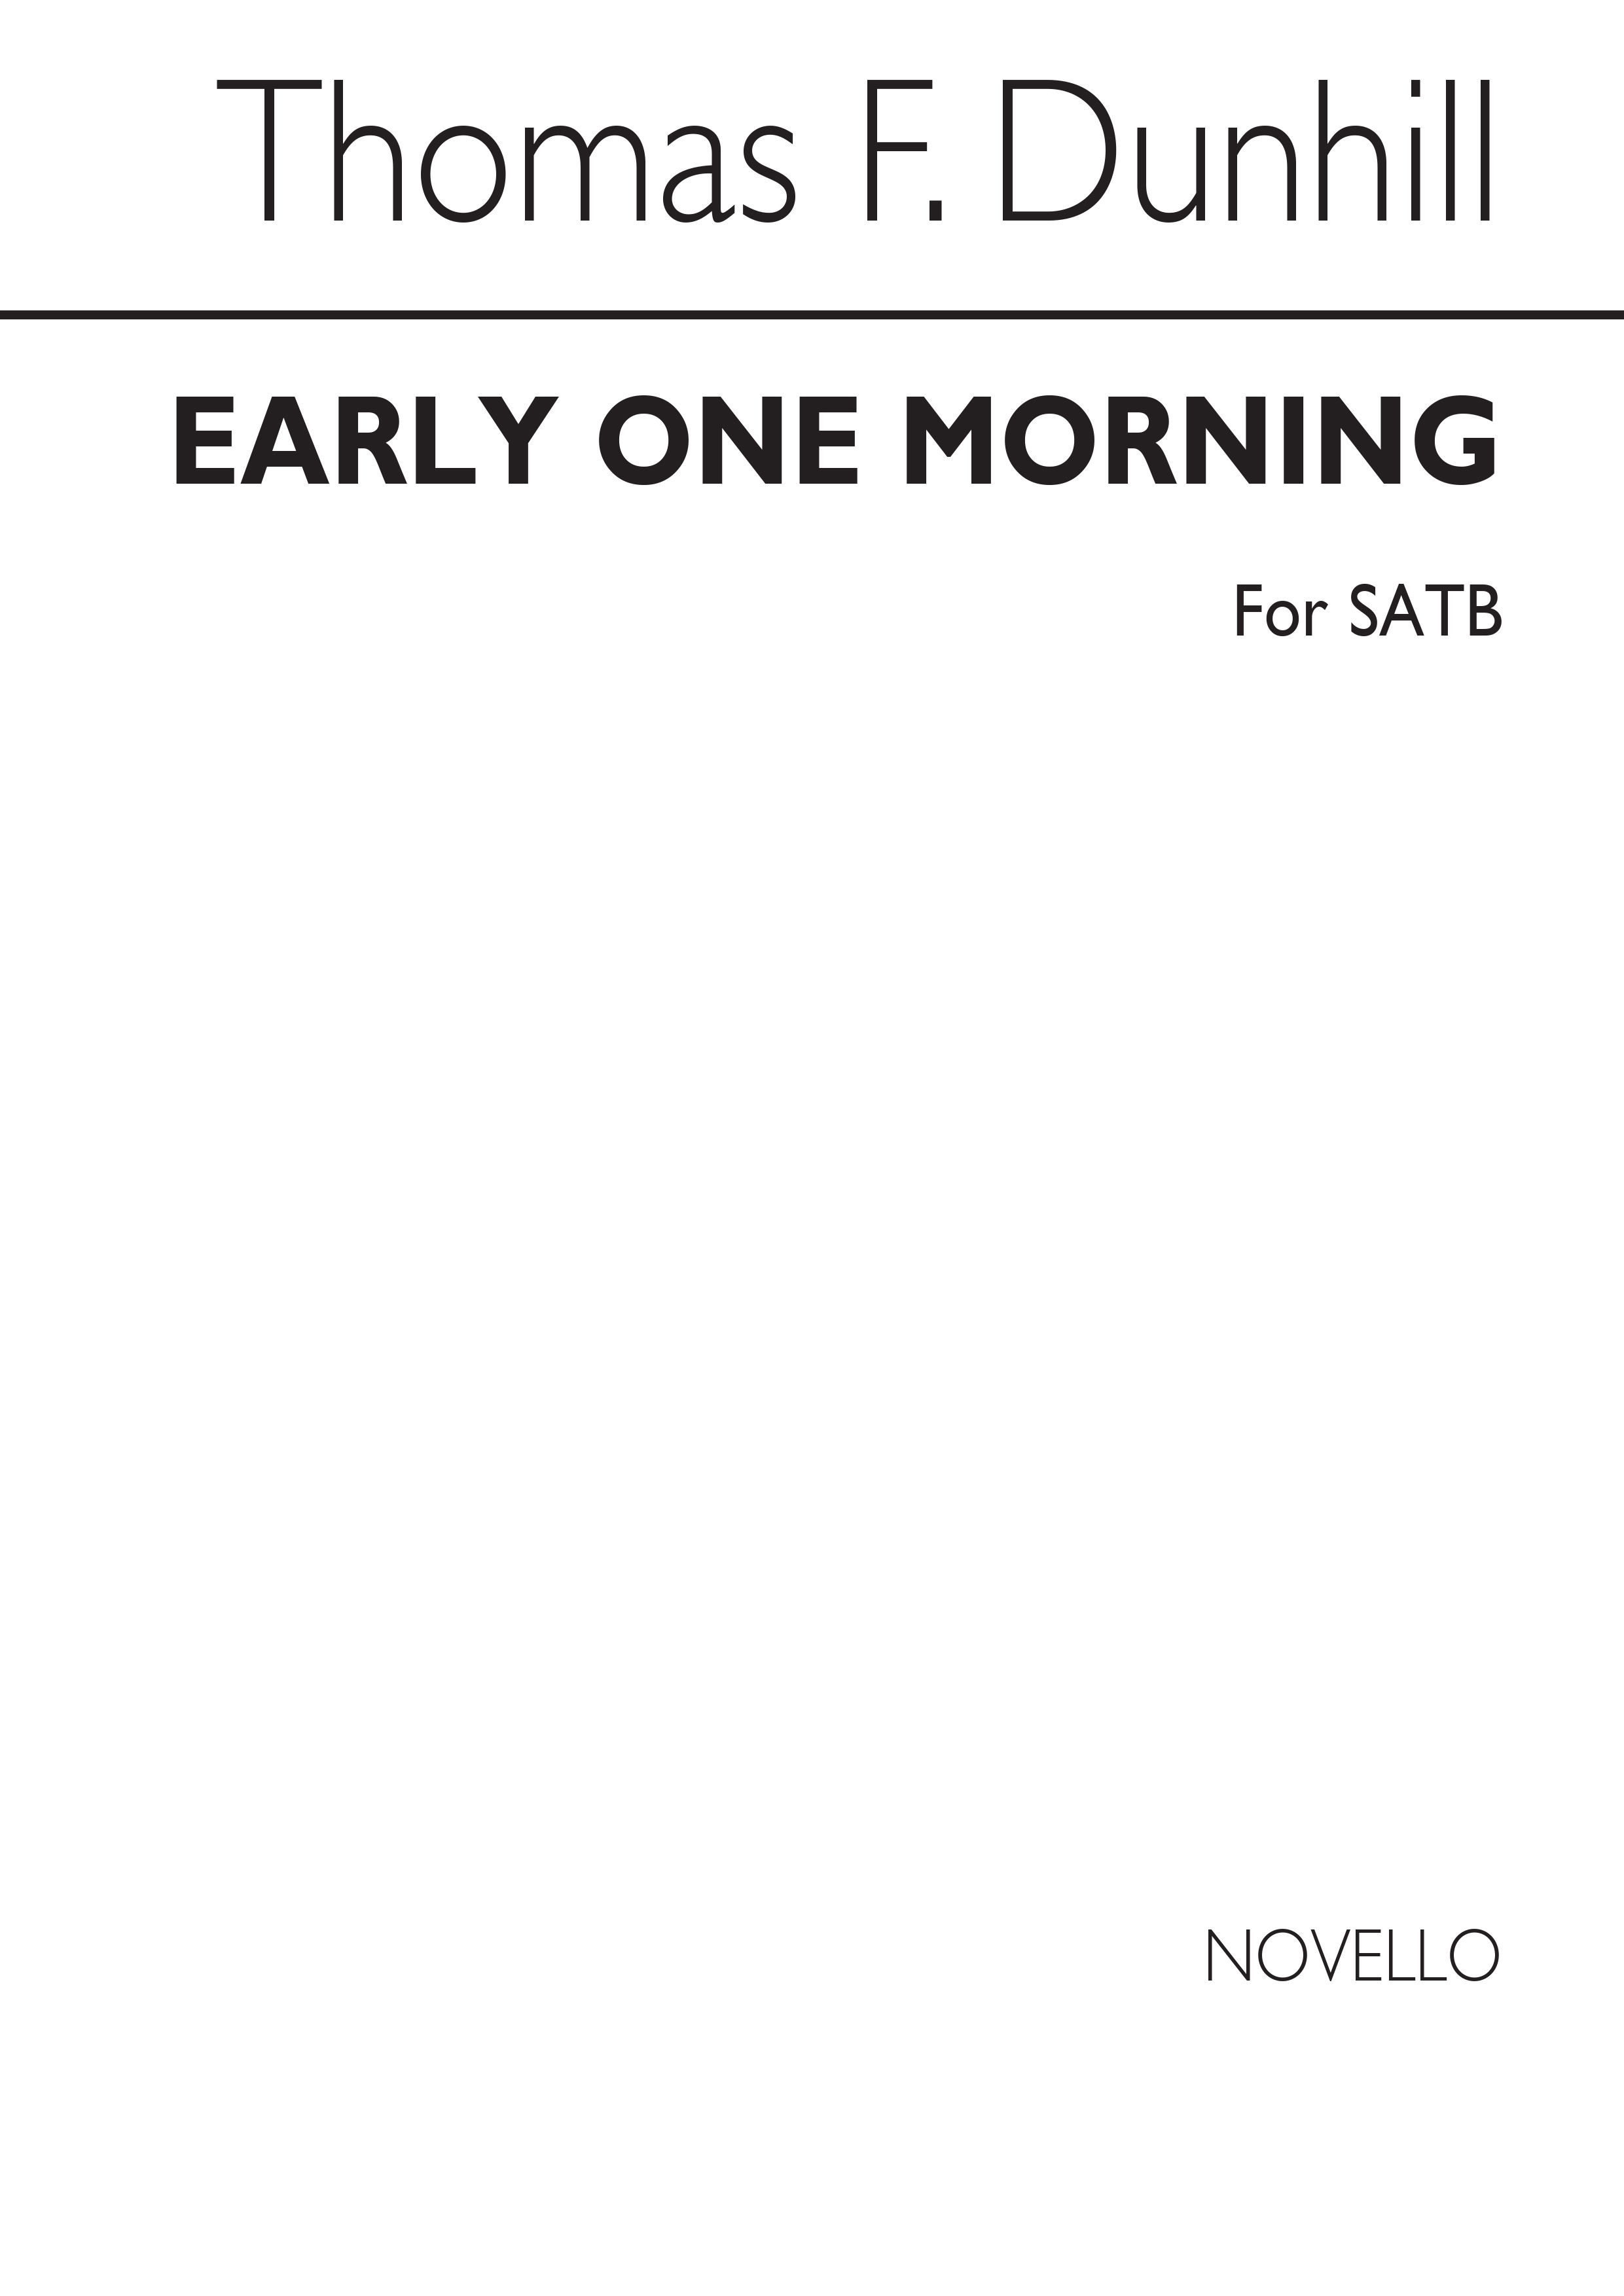 Early One Morning: Arranged by Thomas Dunhill: SATB: Vocal Score